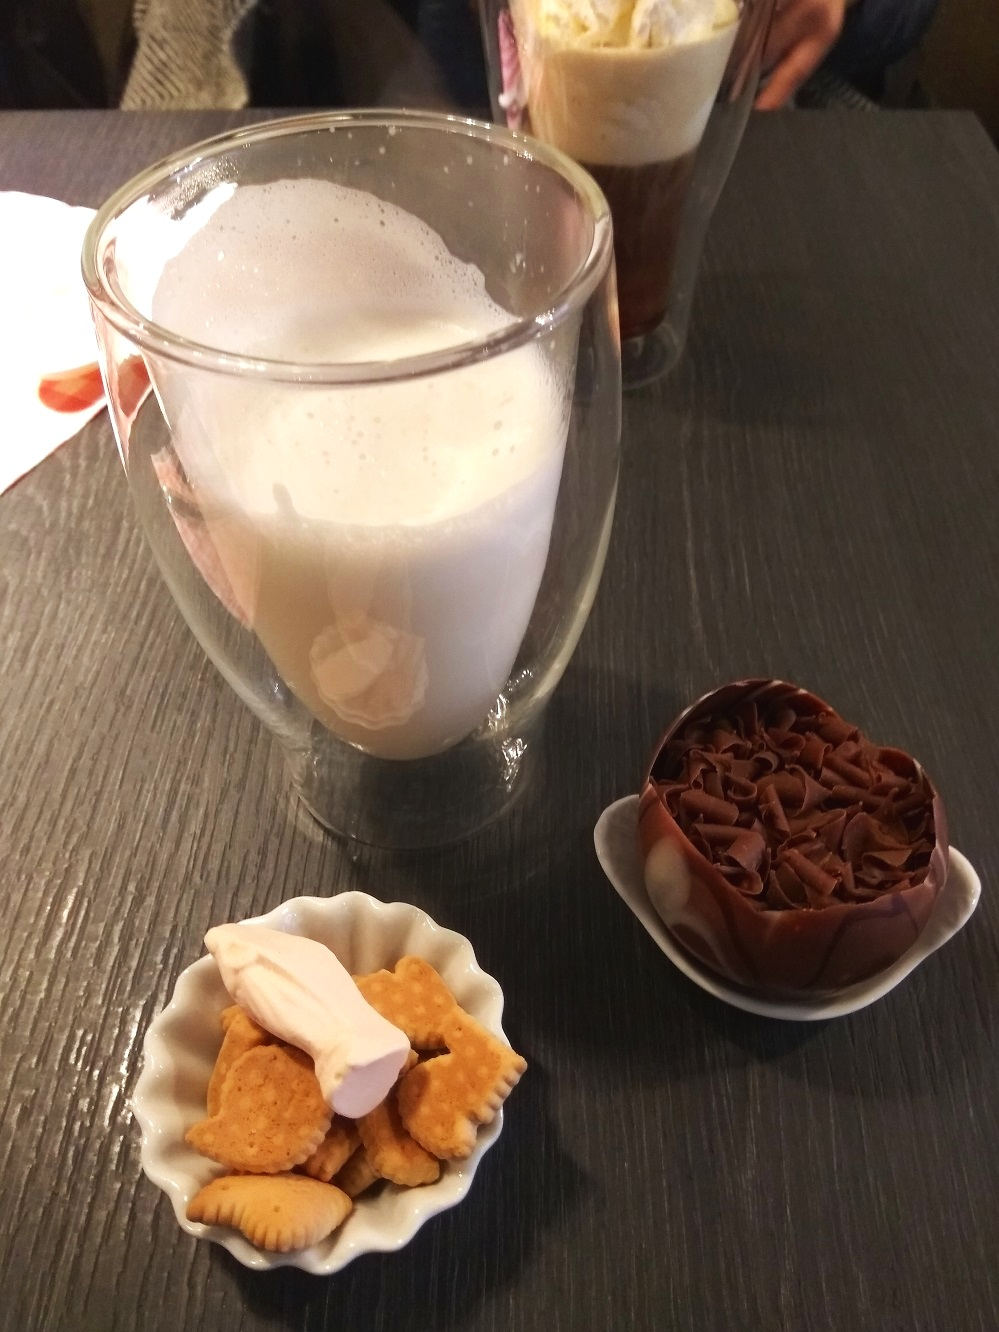 What-to-do-in-bruges-belgian-hot-choc-lizzie-wafels.jpg